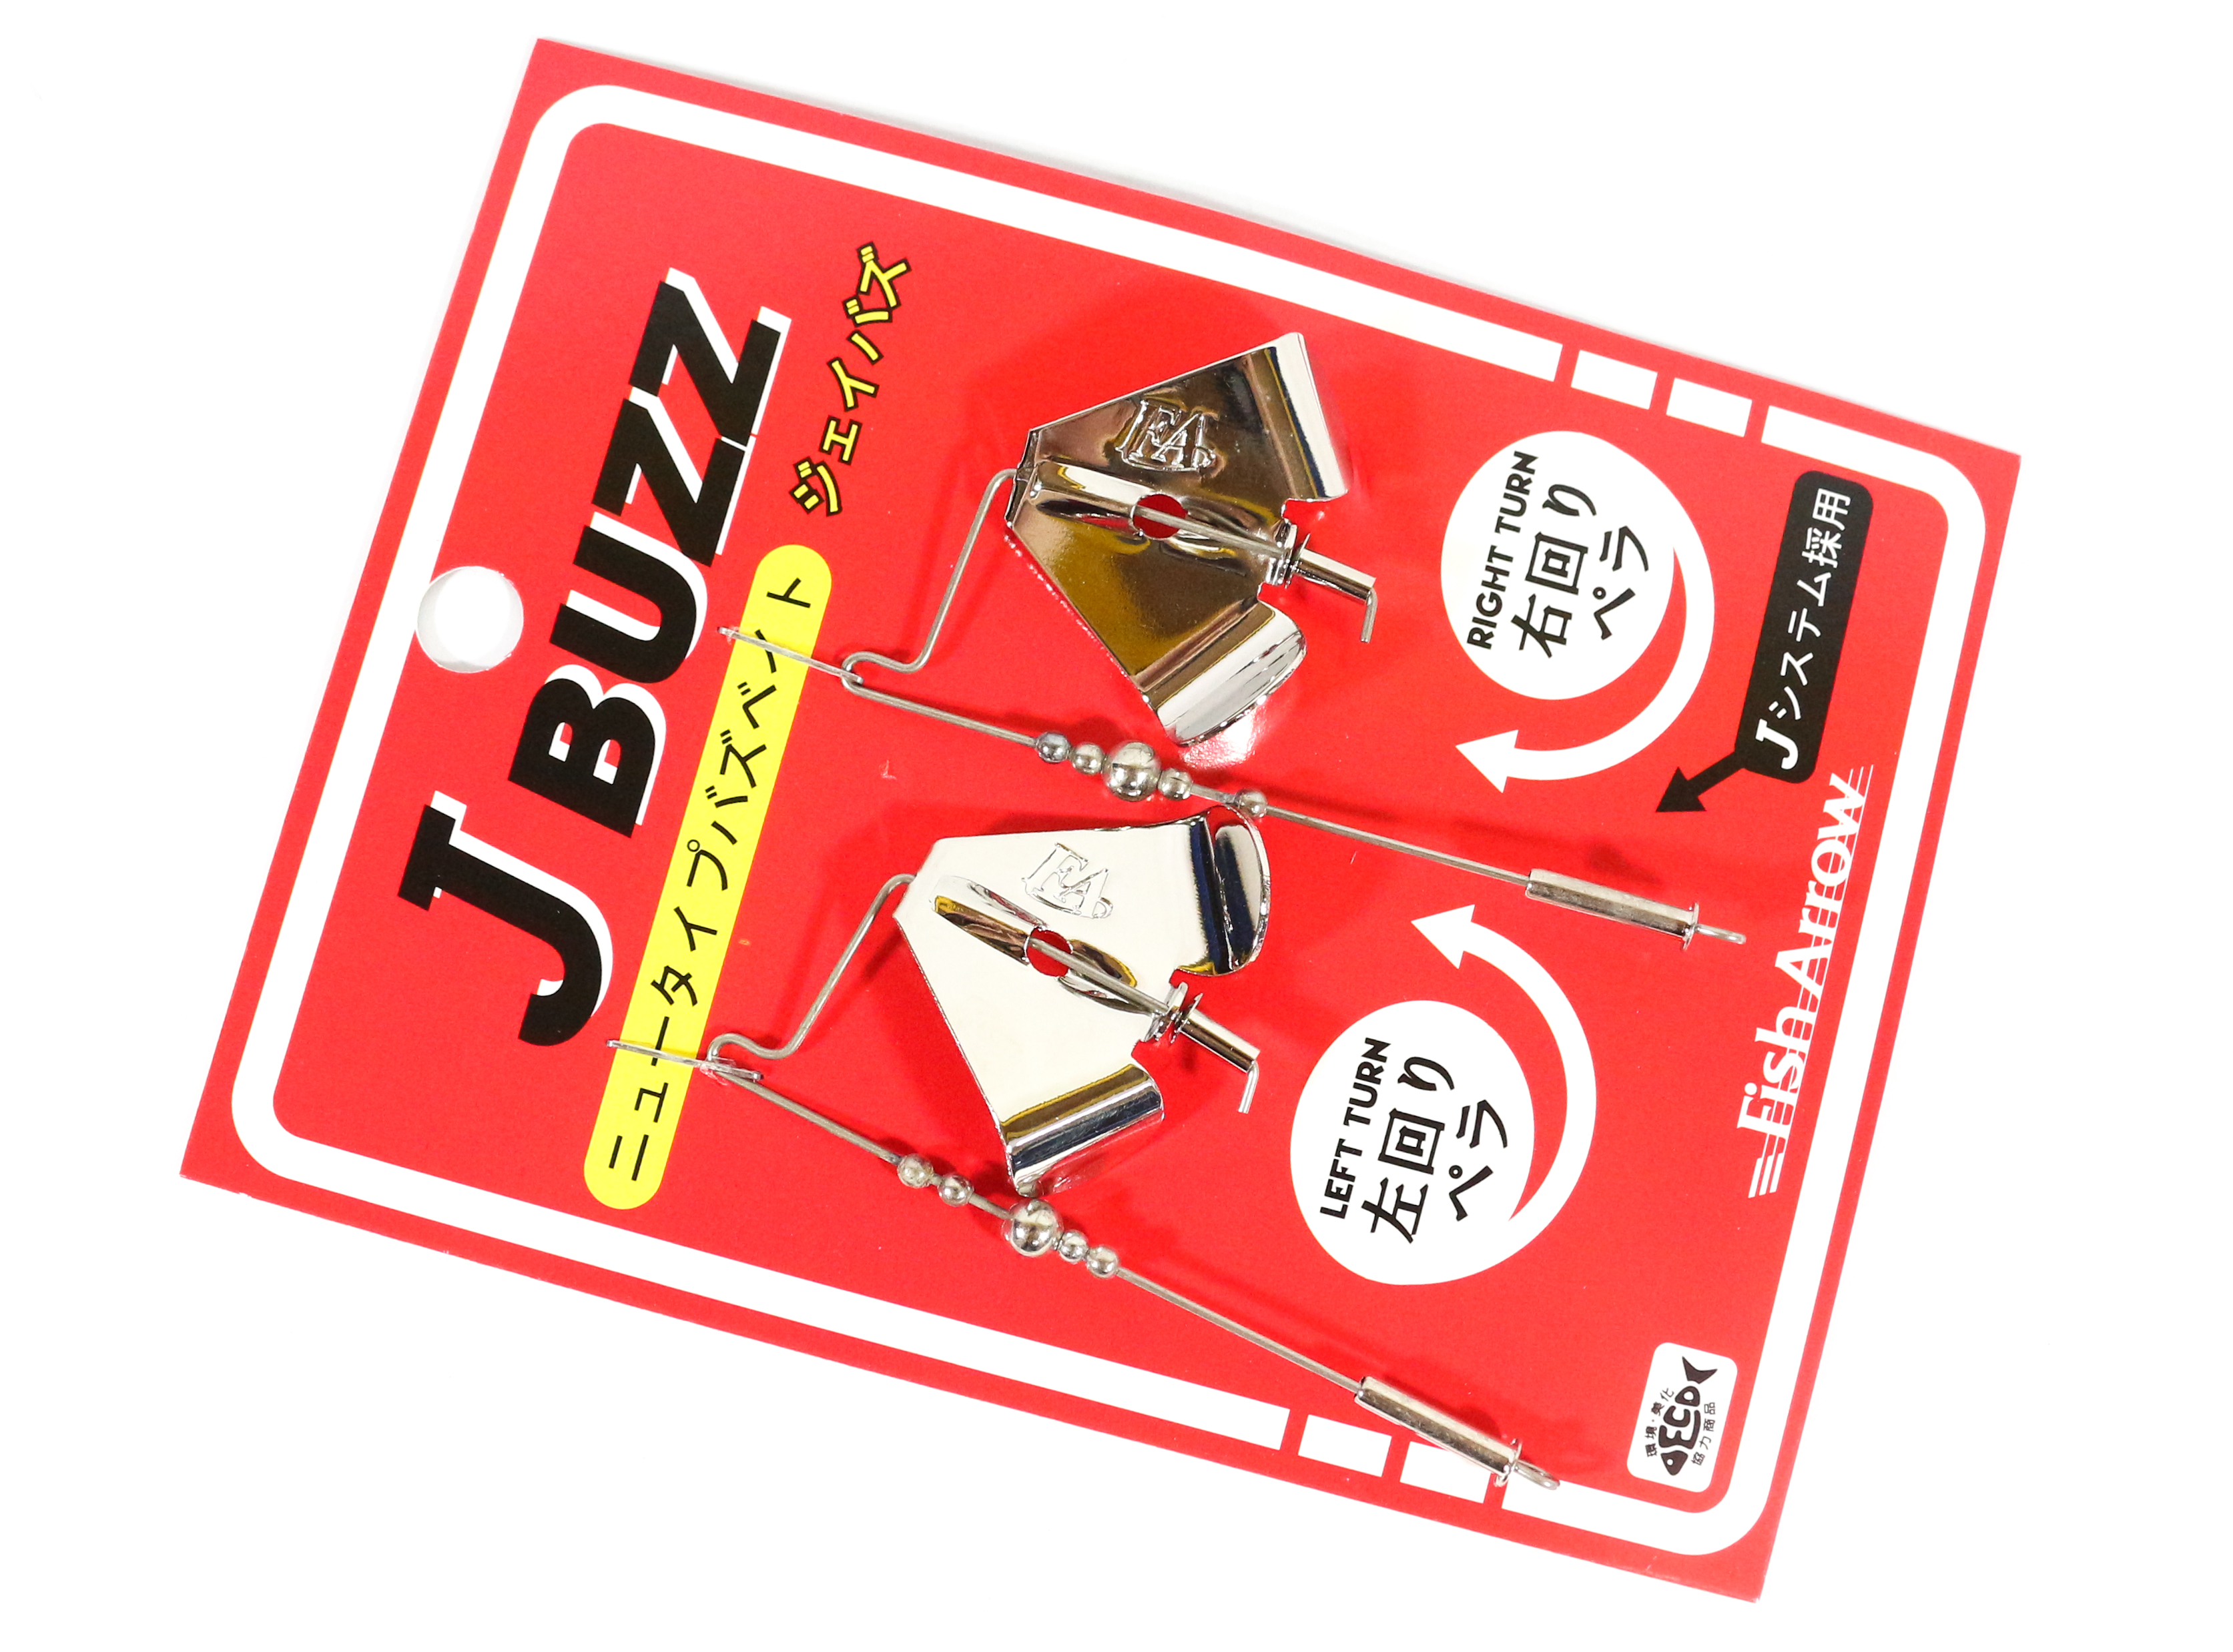 Fish Arrow J Buzz Mini 30mm Prop 2 sets per pack Silver (5022)